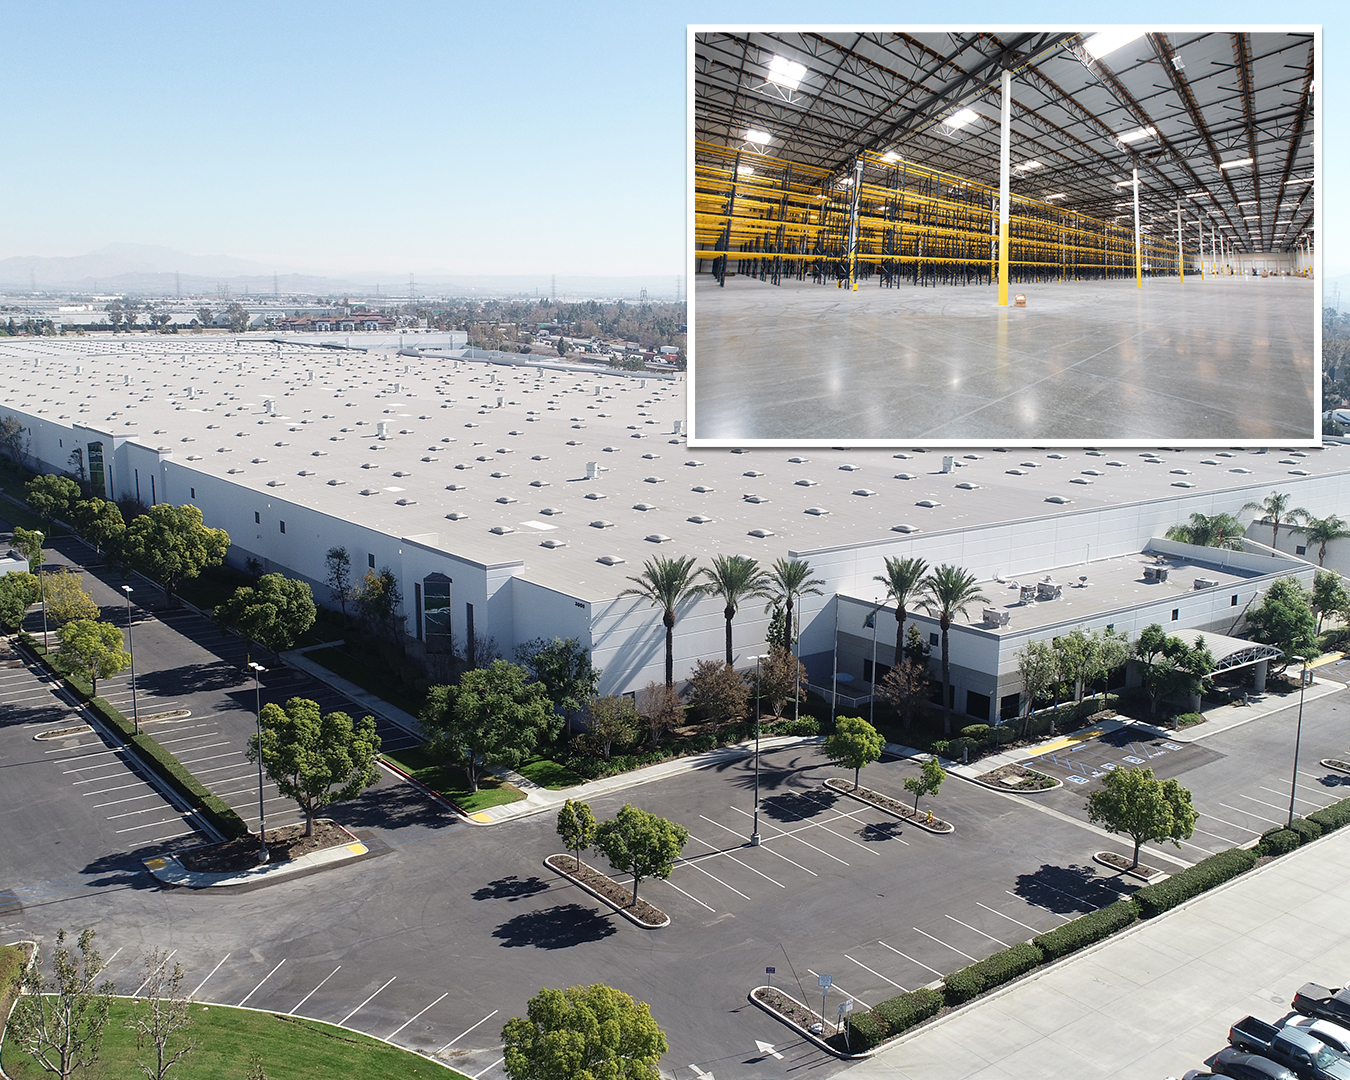 SRG Commercial Property Services Seizes Industrial Space Opportunity in Ontario, CA